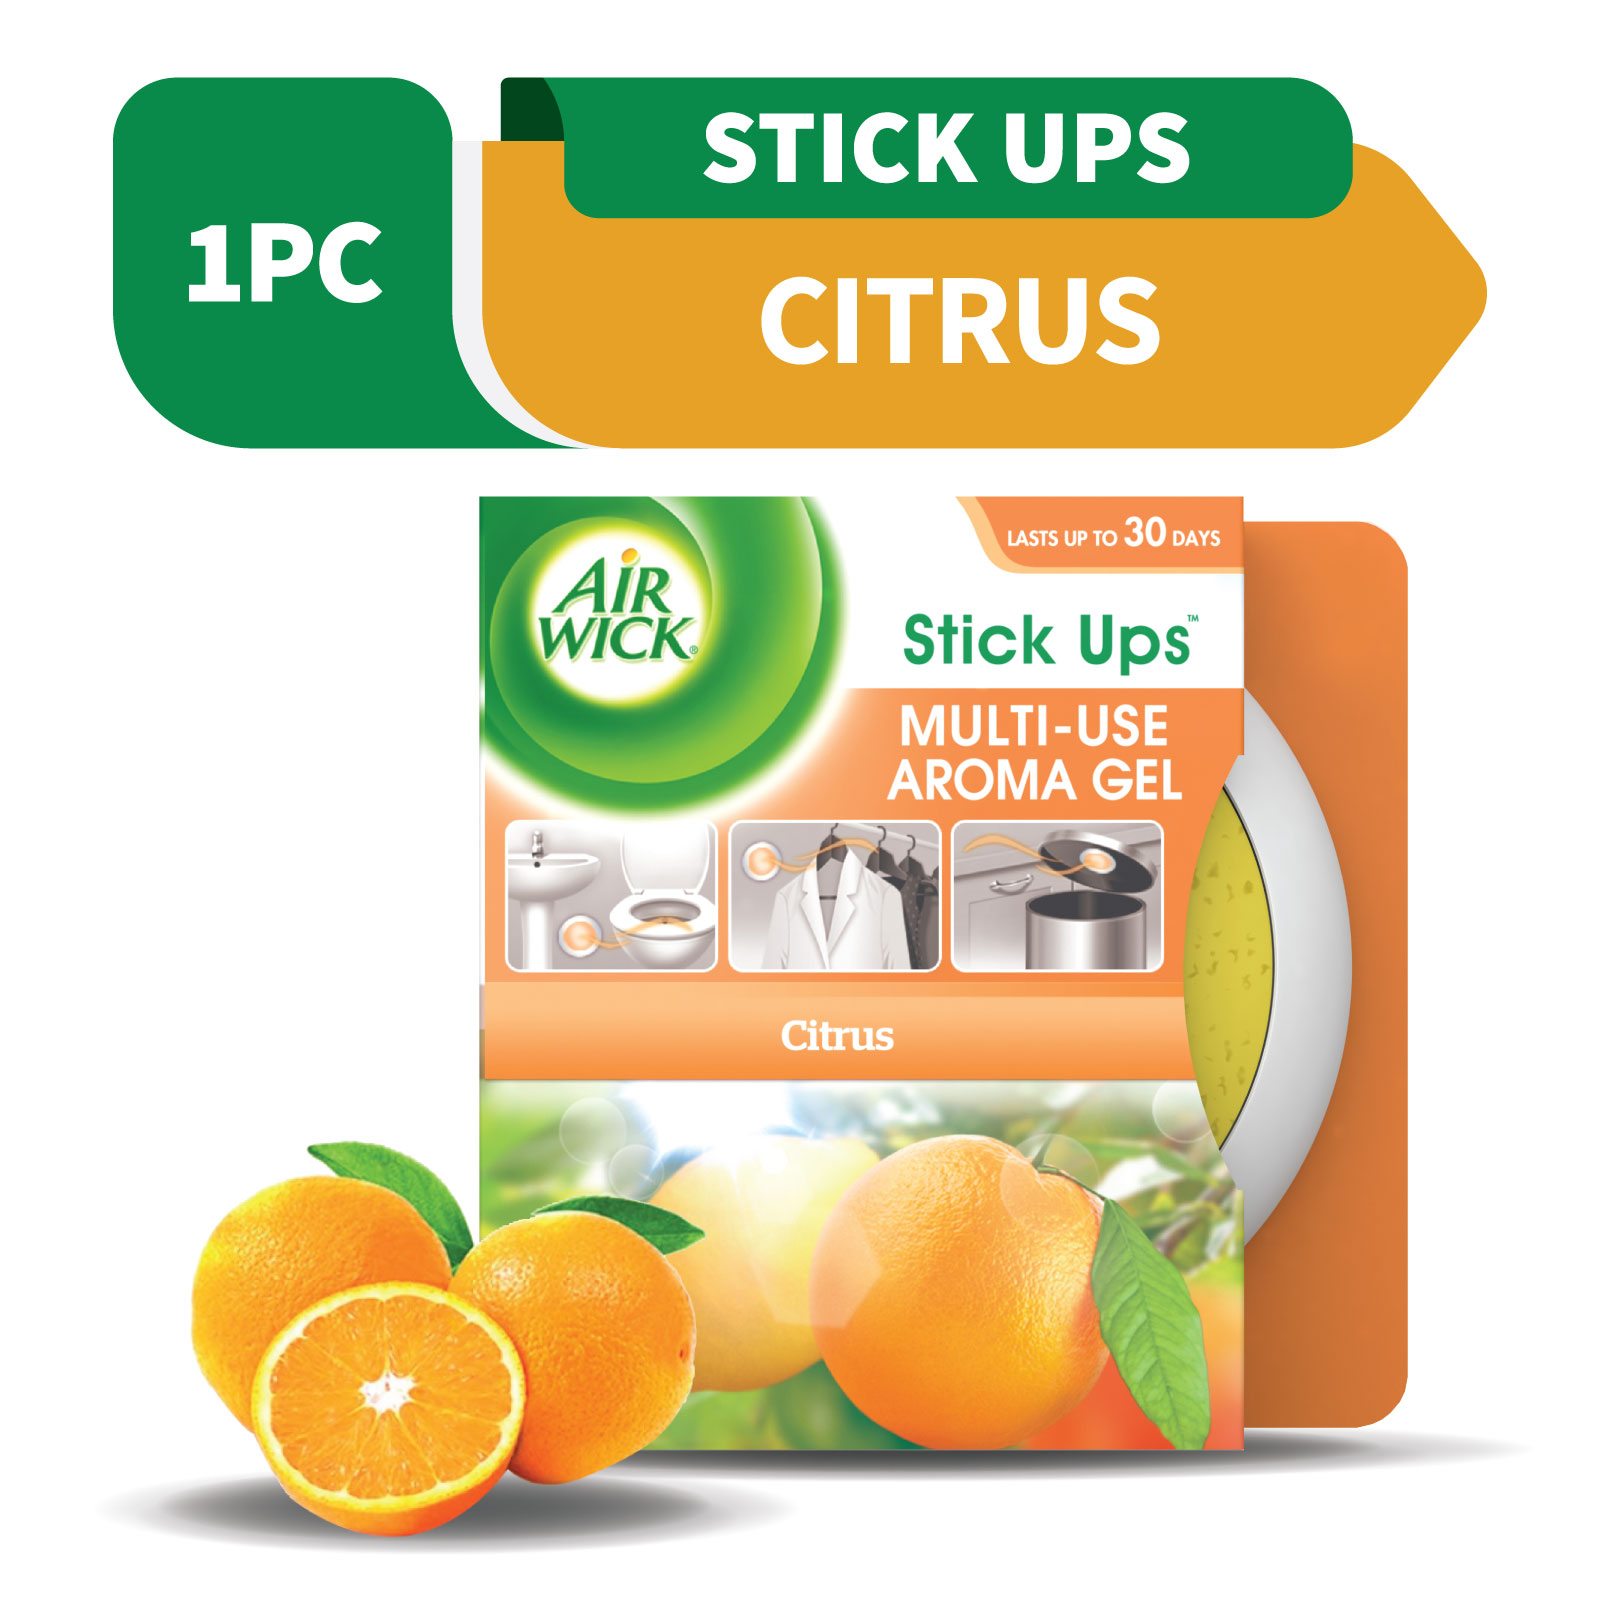 Air Wick Stick Up Gel Citrus 30g